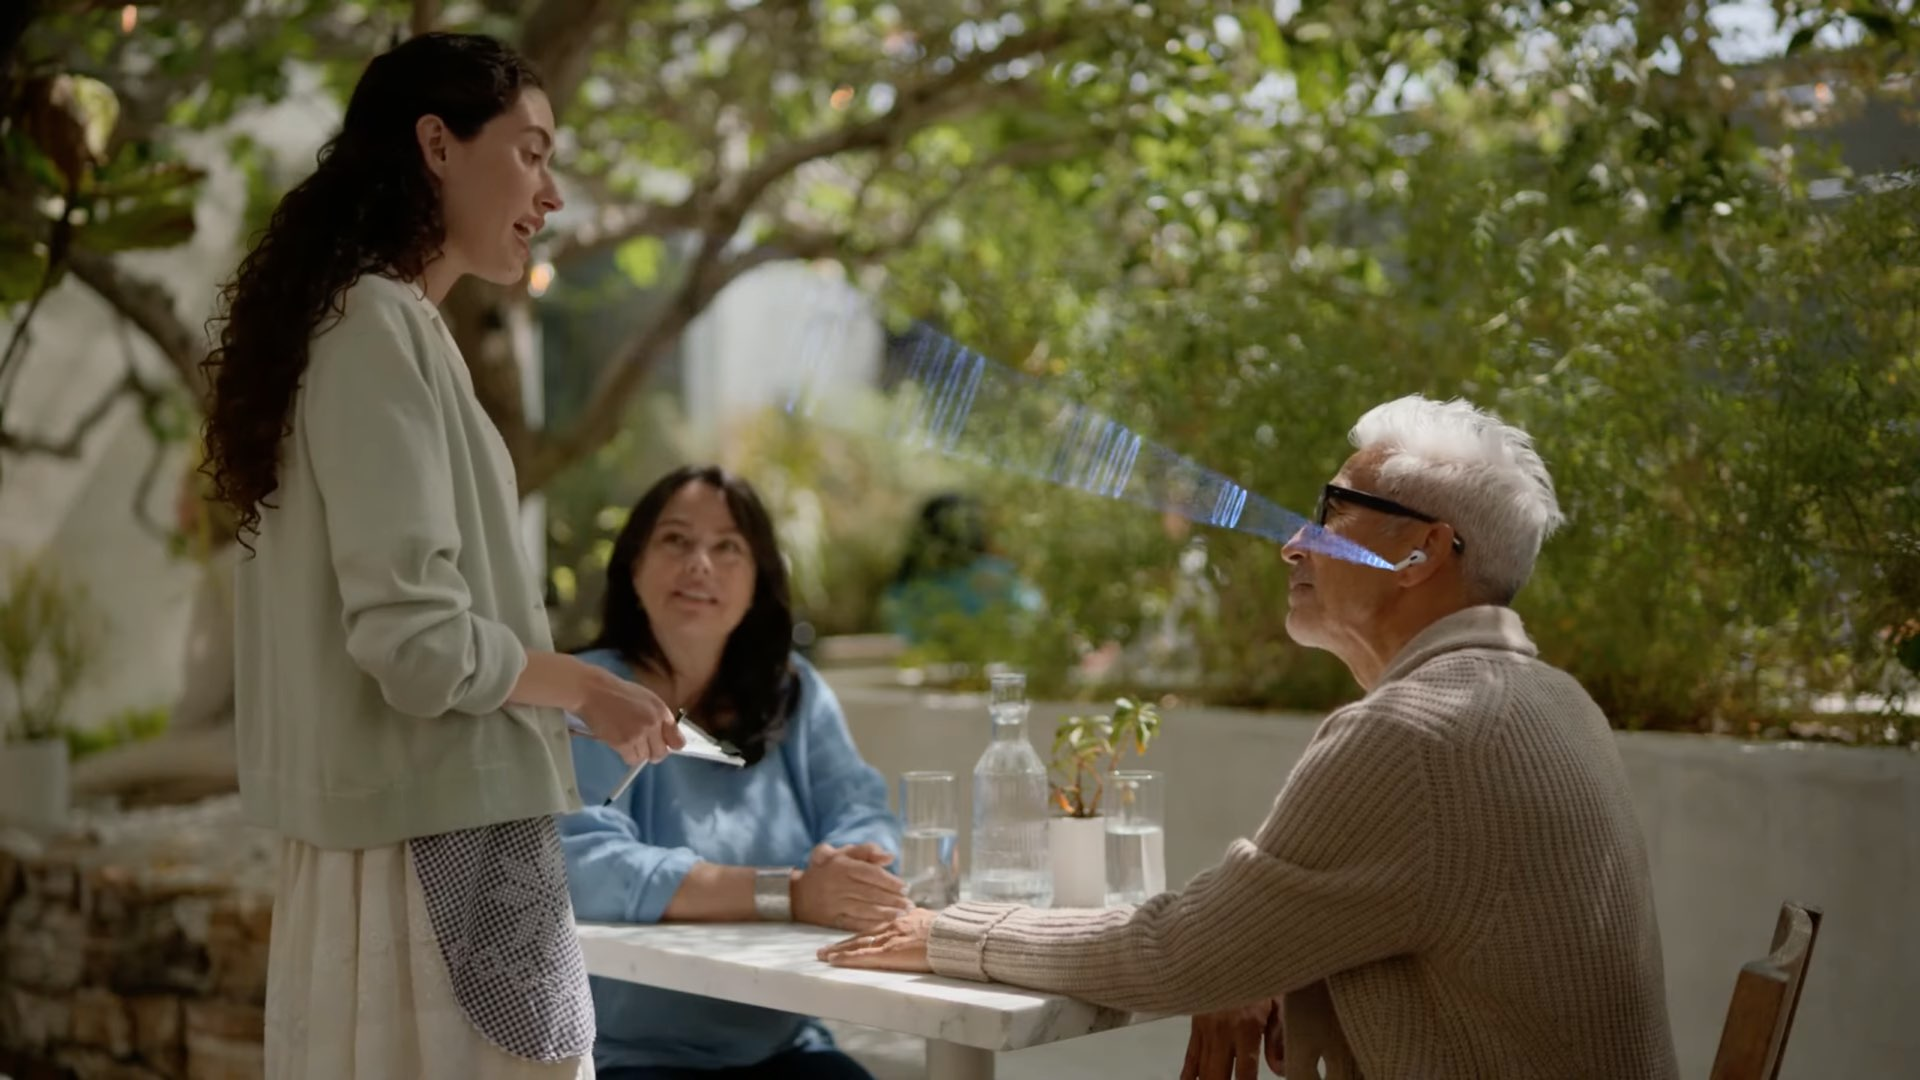 A still image from Apple's video showing an elderly person sitting at a table and talking to a waitress using her AirPods Pro with the Conversation Boost feature